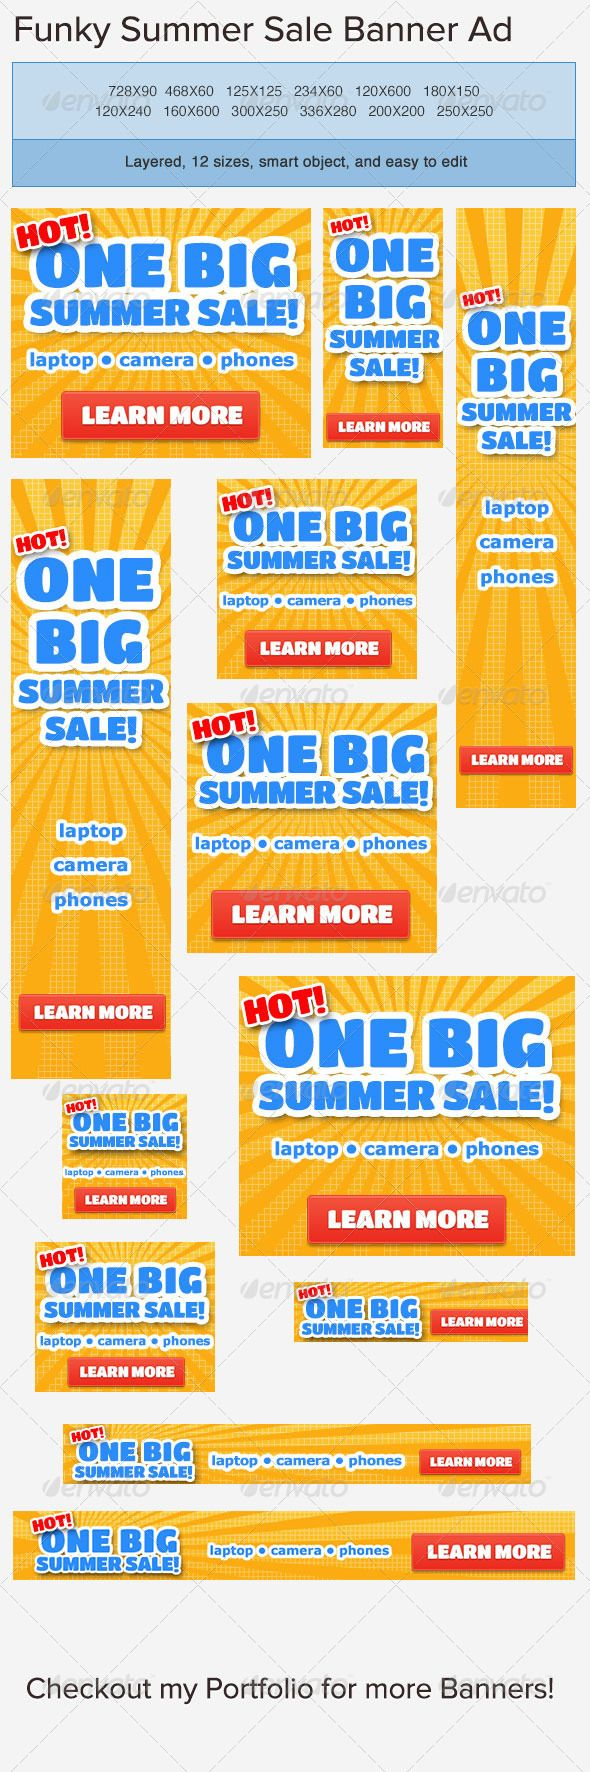 17 best images about ads banner template graphicriver on 17 best images about ads banner template graphicriver banner summer and fonts